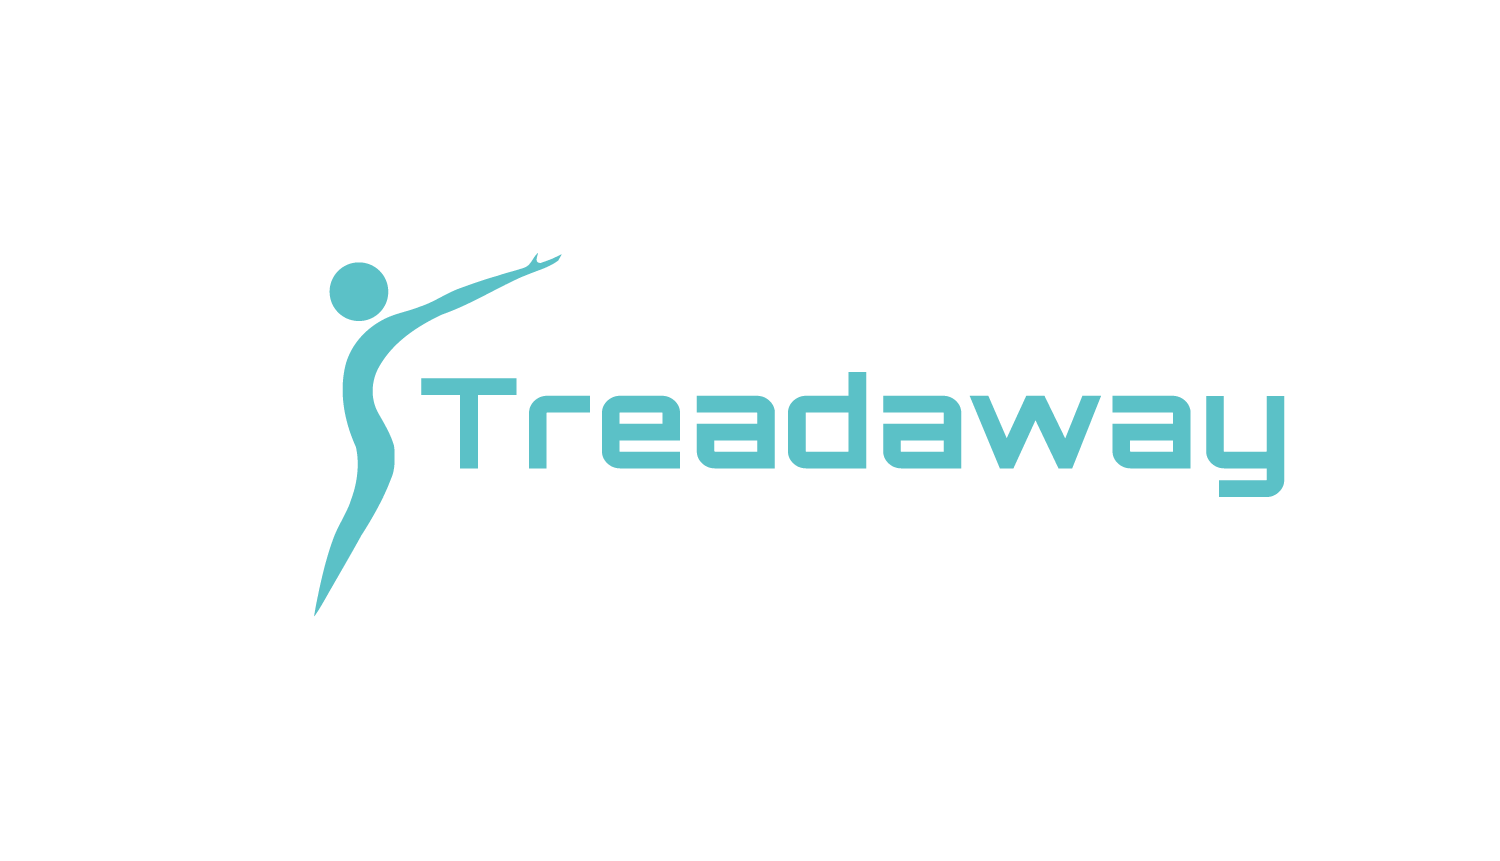 Treadaway Training